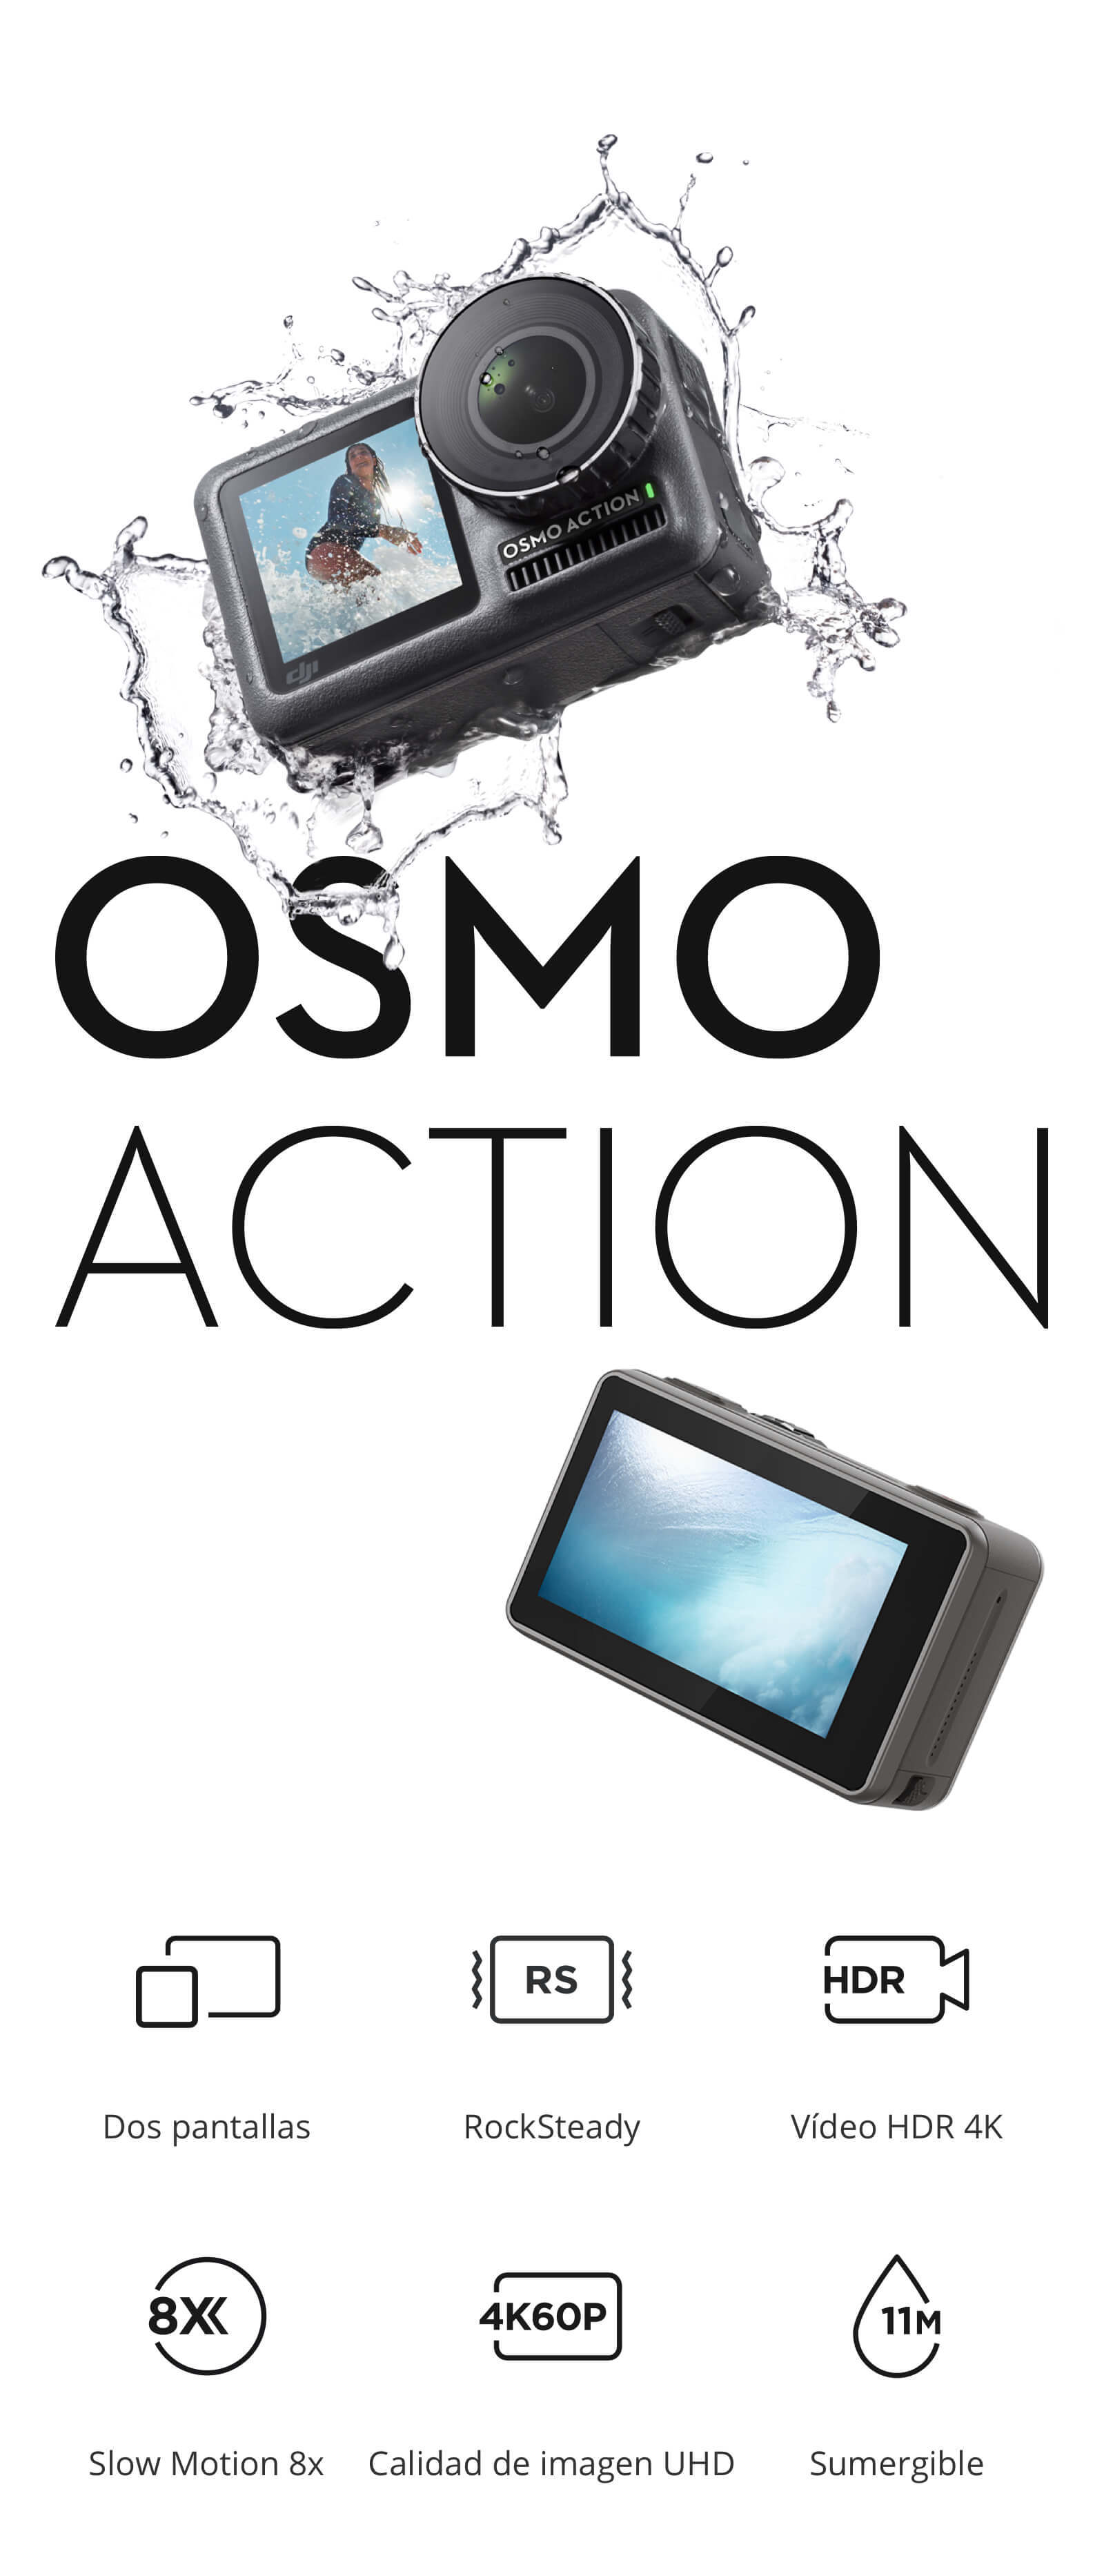 DJI_osmo_action_stockrc1